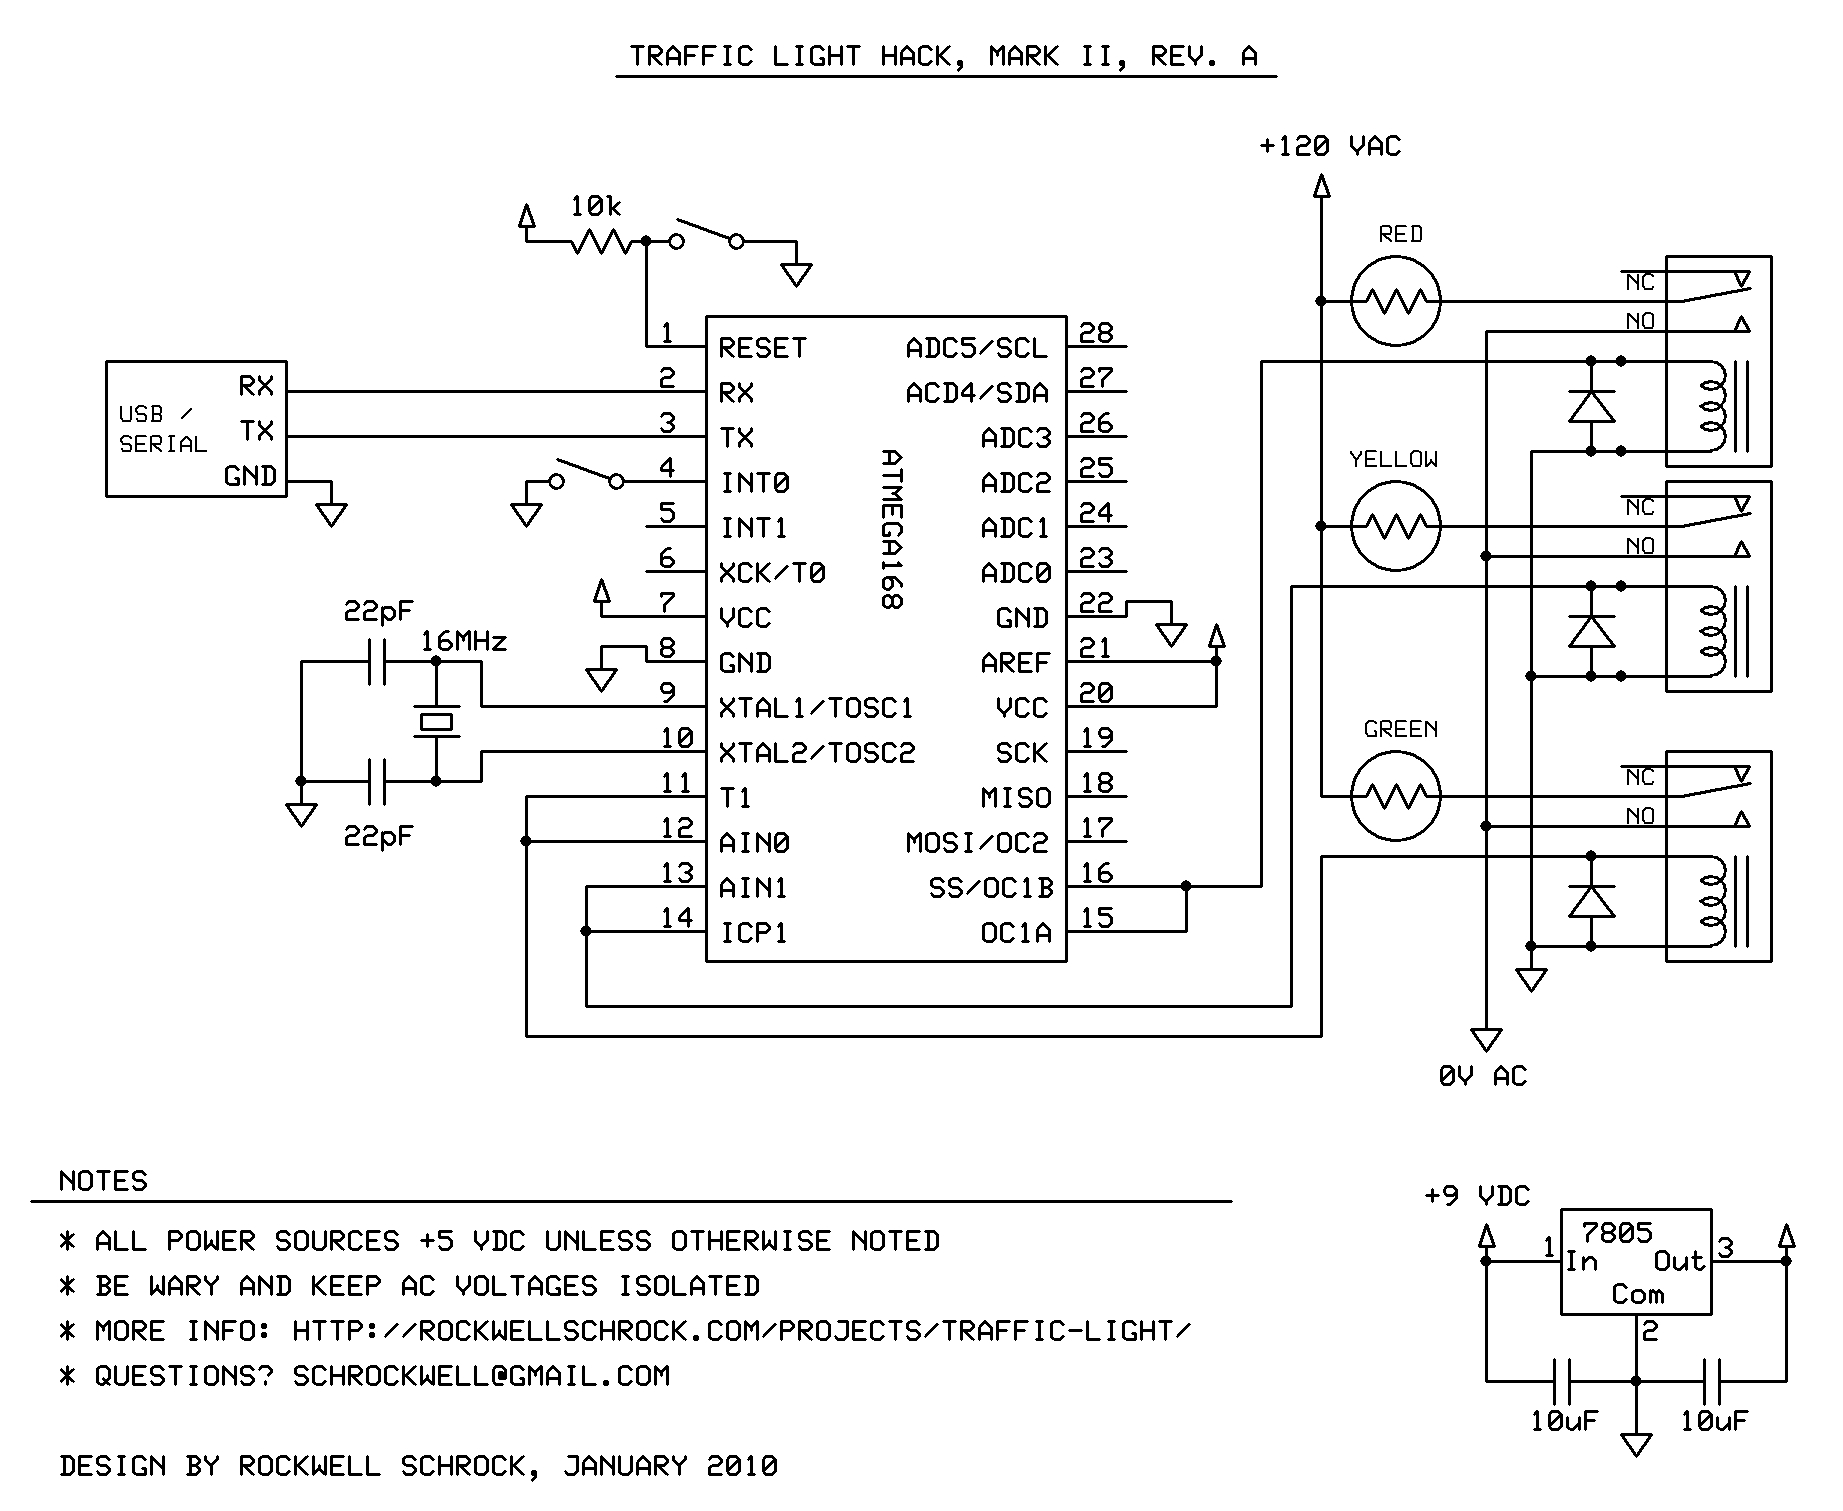 Wiring Diagram For Usb Foot Pedal